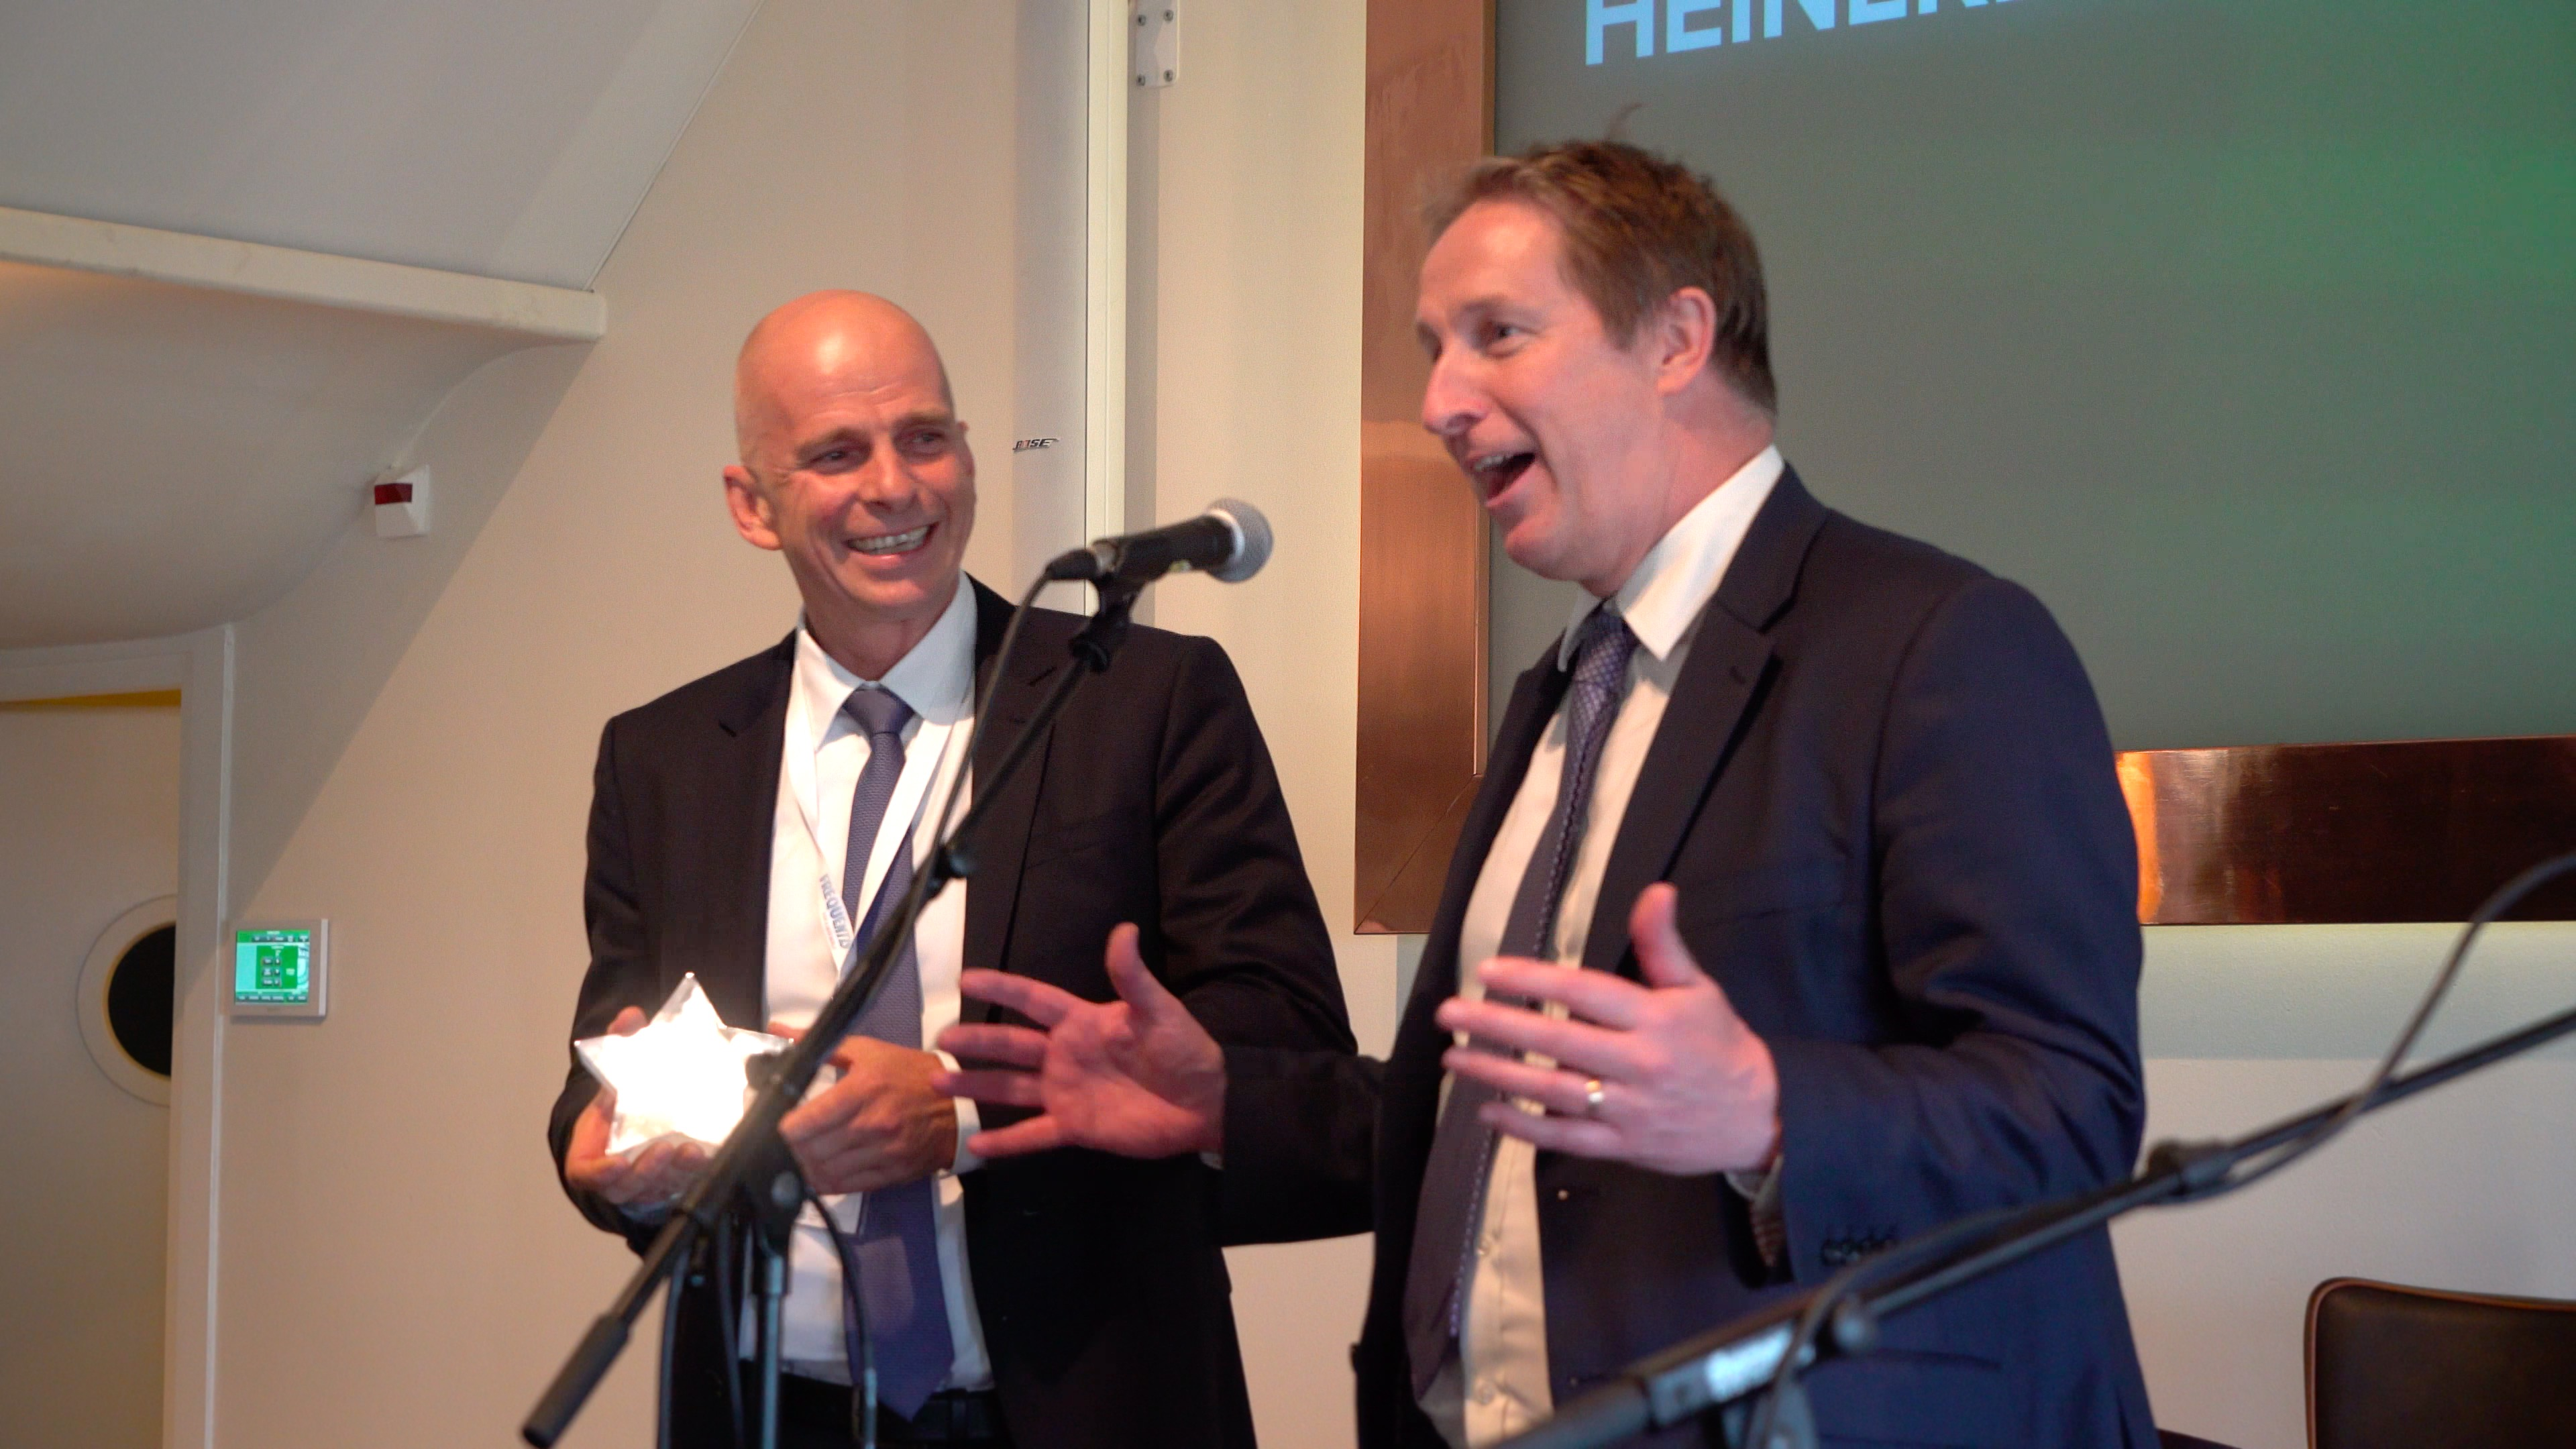 Johann_Schweiger_and_Peter_Prater_from_Frequentis_with_the_Future_Tech_Award_2016